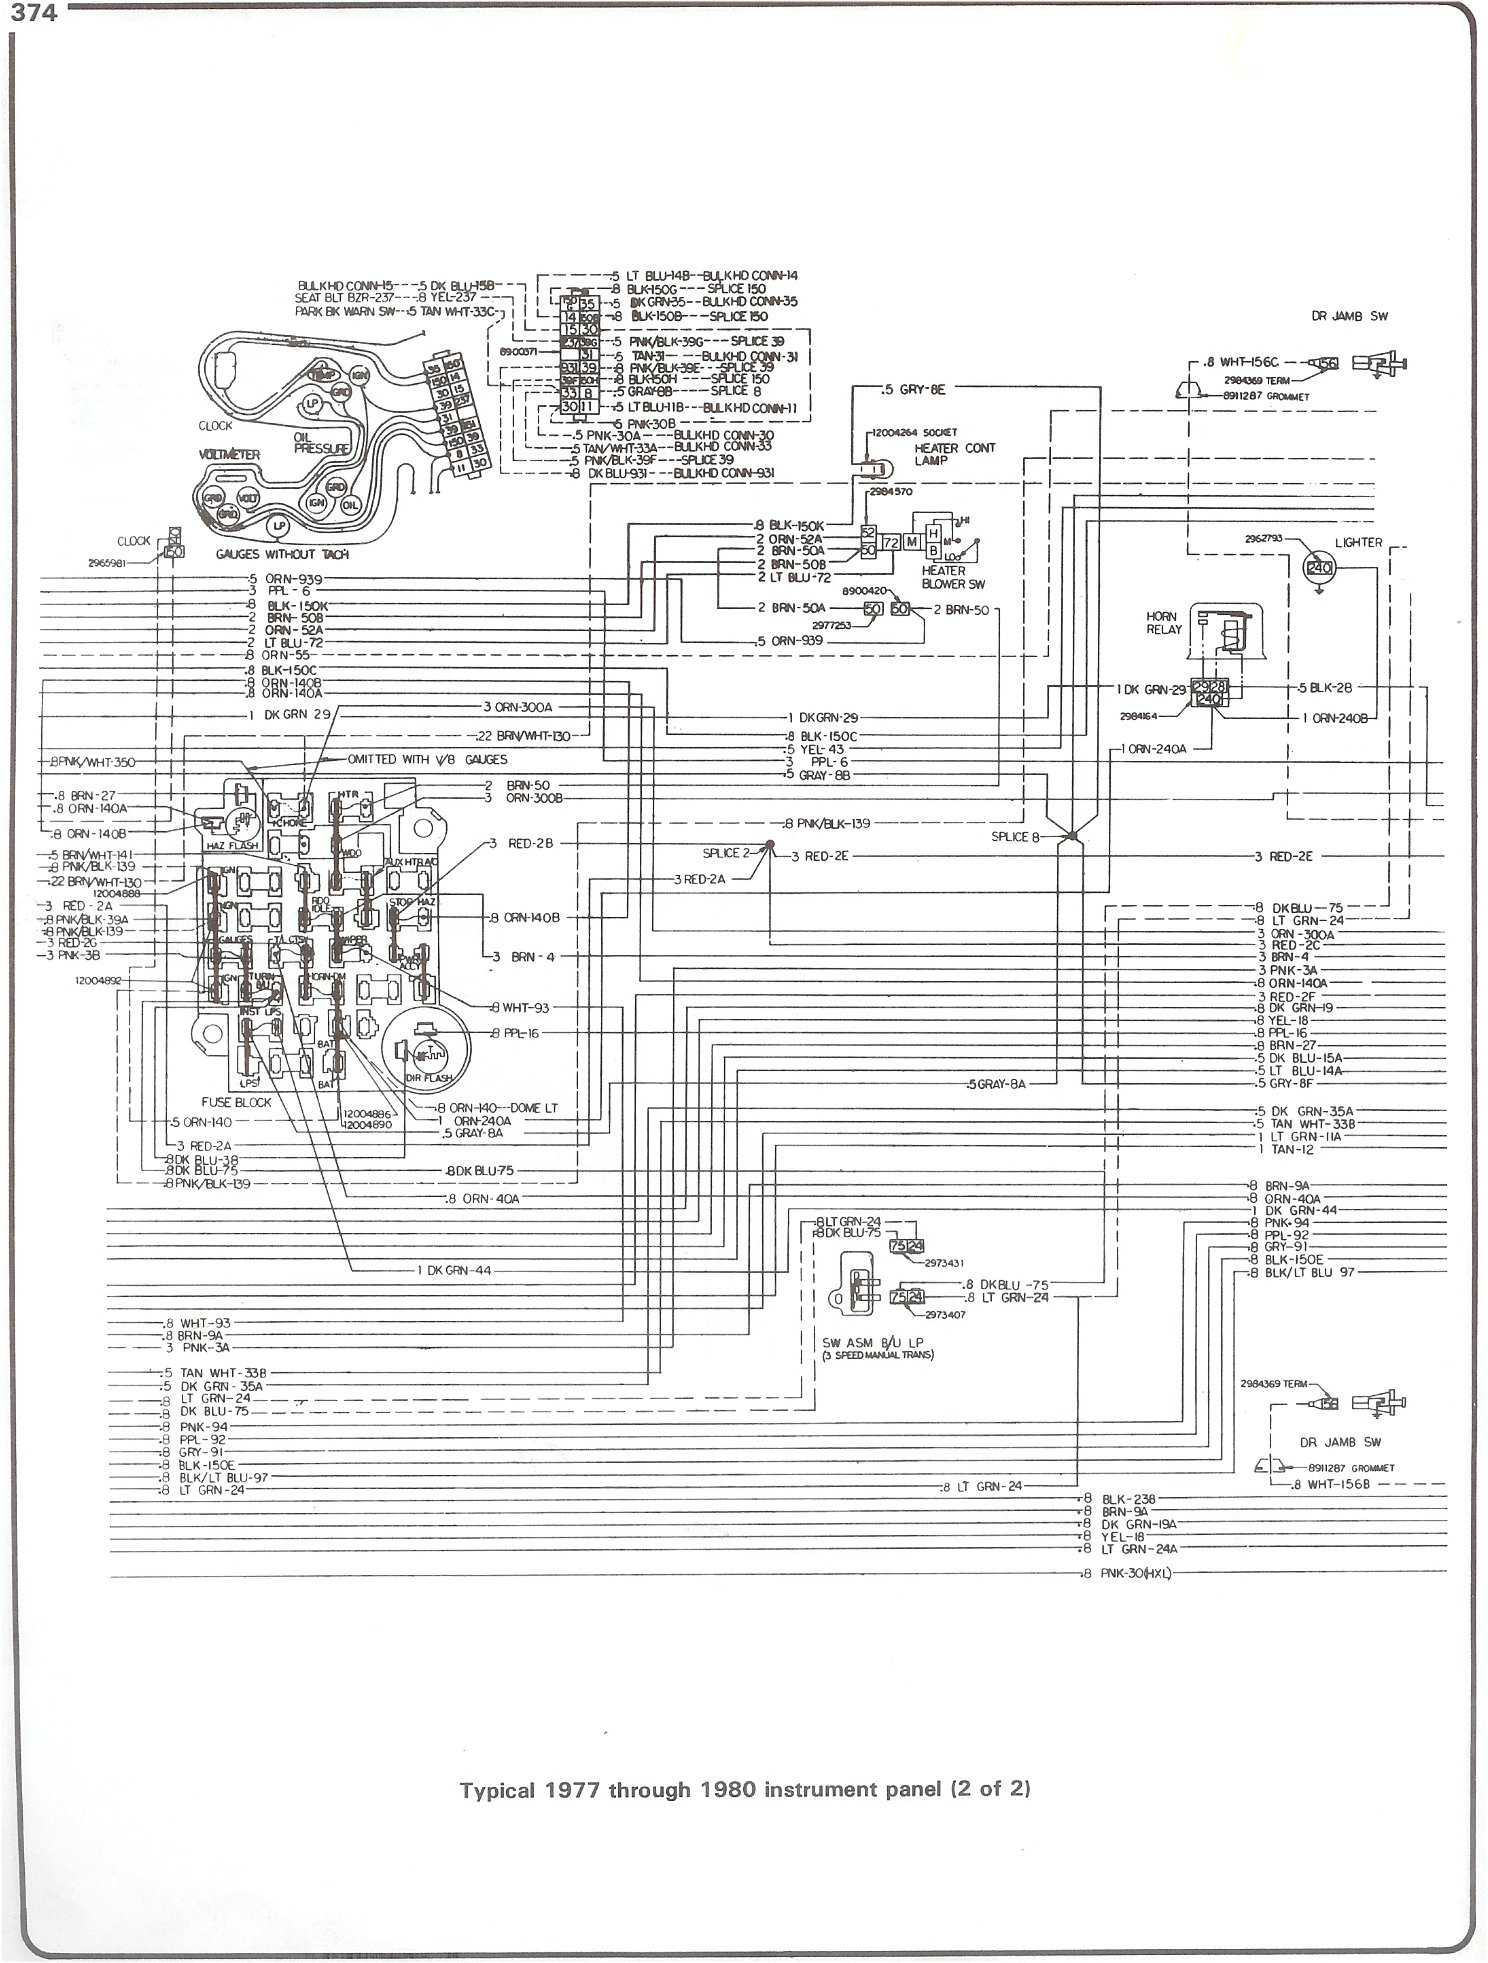 77 80_instrument_pg2 1978 chevy truck wiring diagram chevy malibu ignition wiring 1978 chevy truck fuse box diagram at crackthecode.co